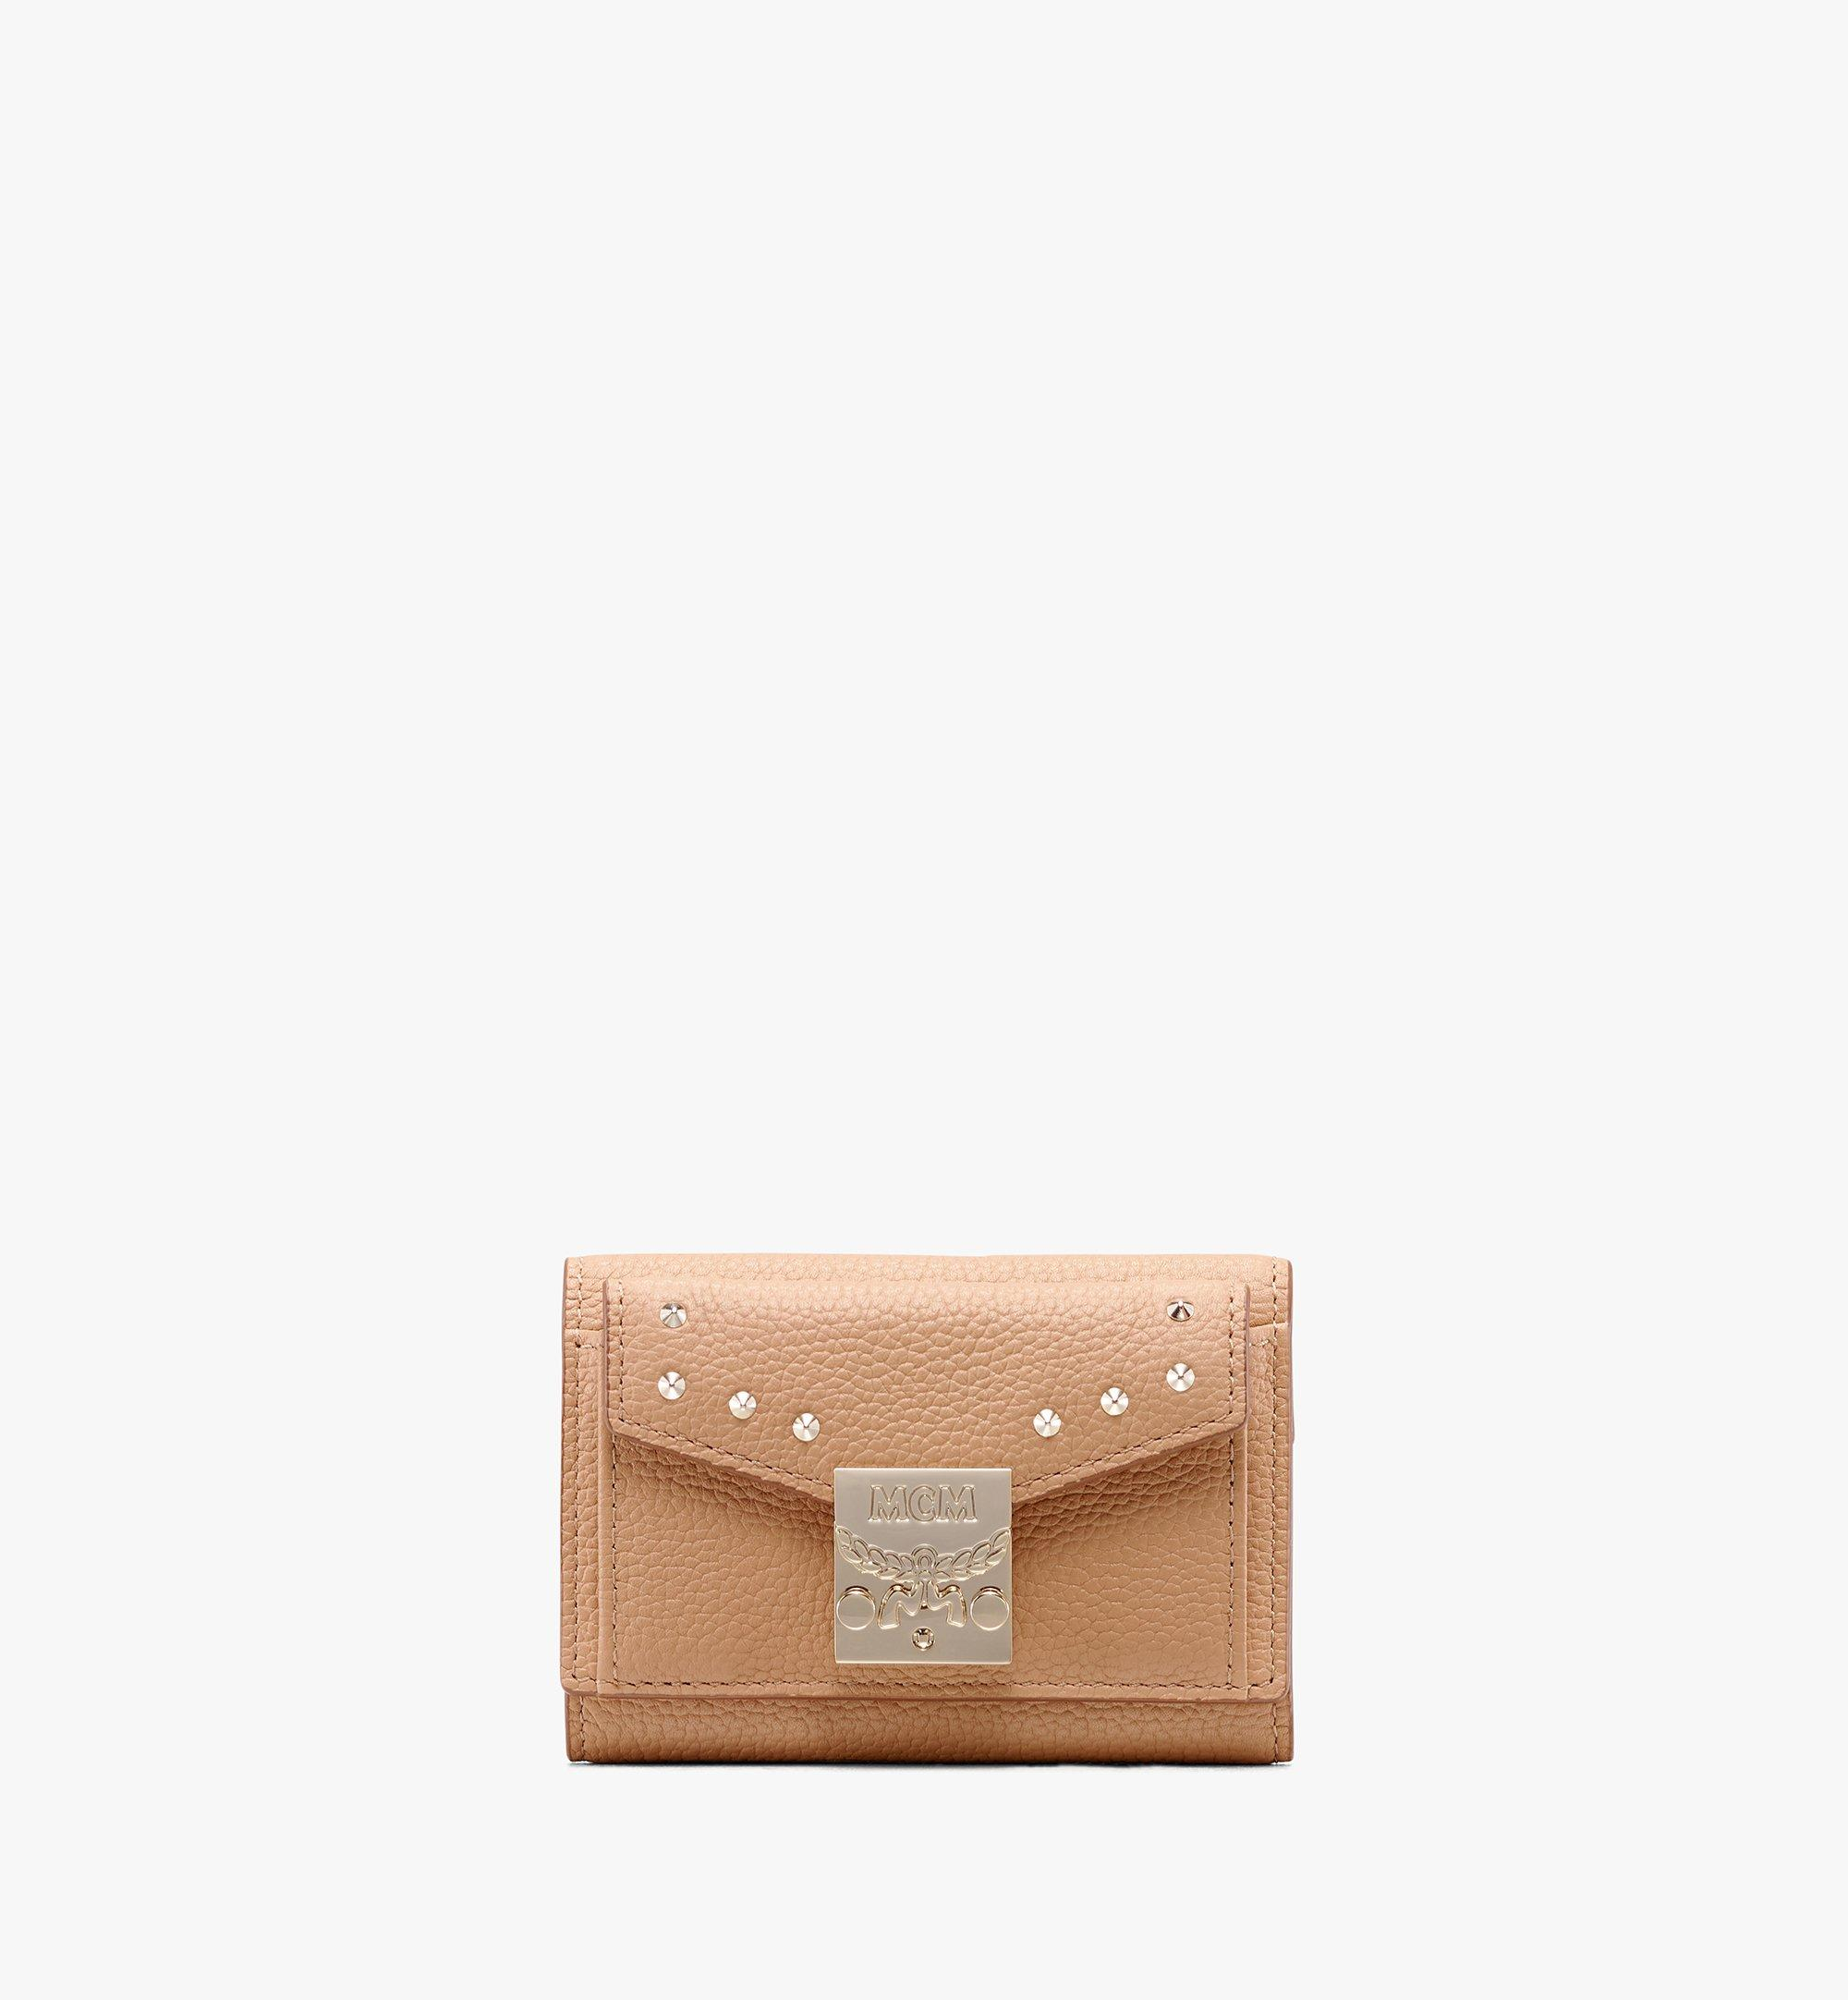 MCM Patricia Three-Fold Wallet in Studded Park Ave Leather Beige MYA9APA86BC001 Alternate View 1